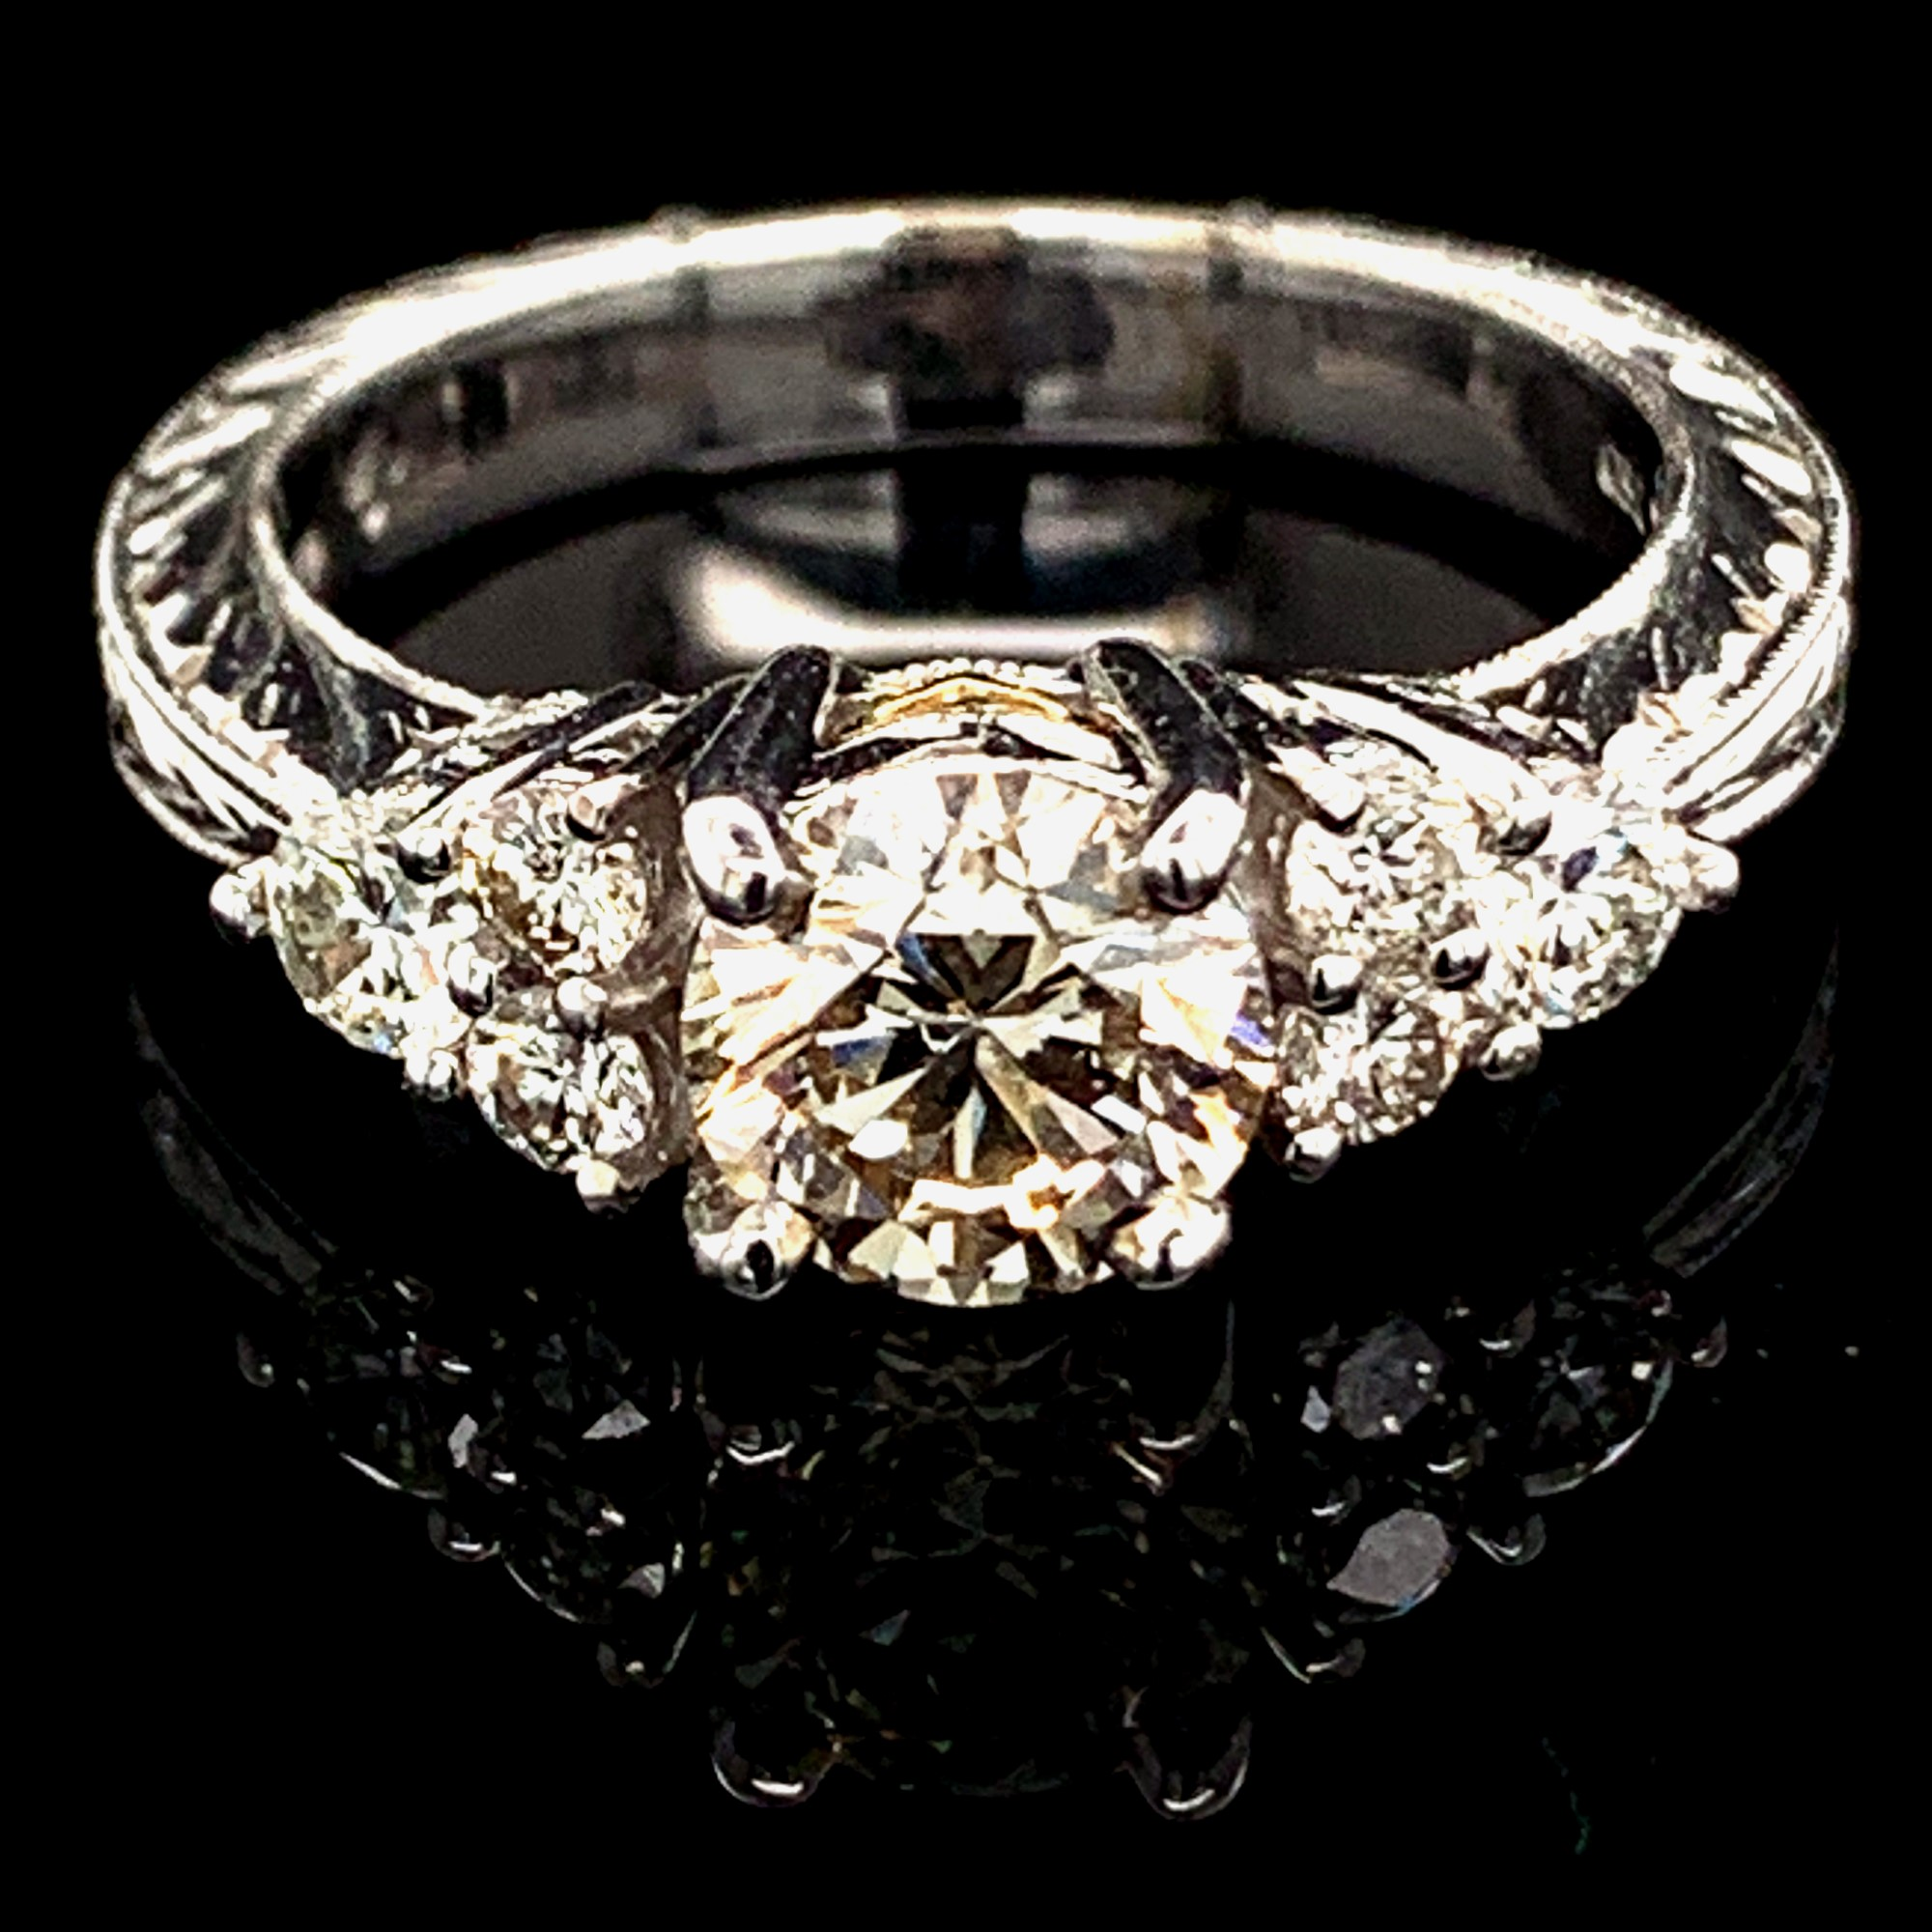 Diamond Engagement Rings - Ladies Carved 18K White/Yellow Gold And Diamond Engagement Ring